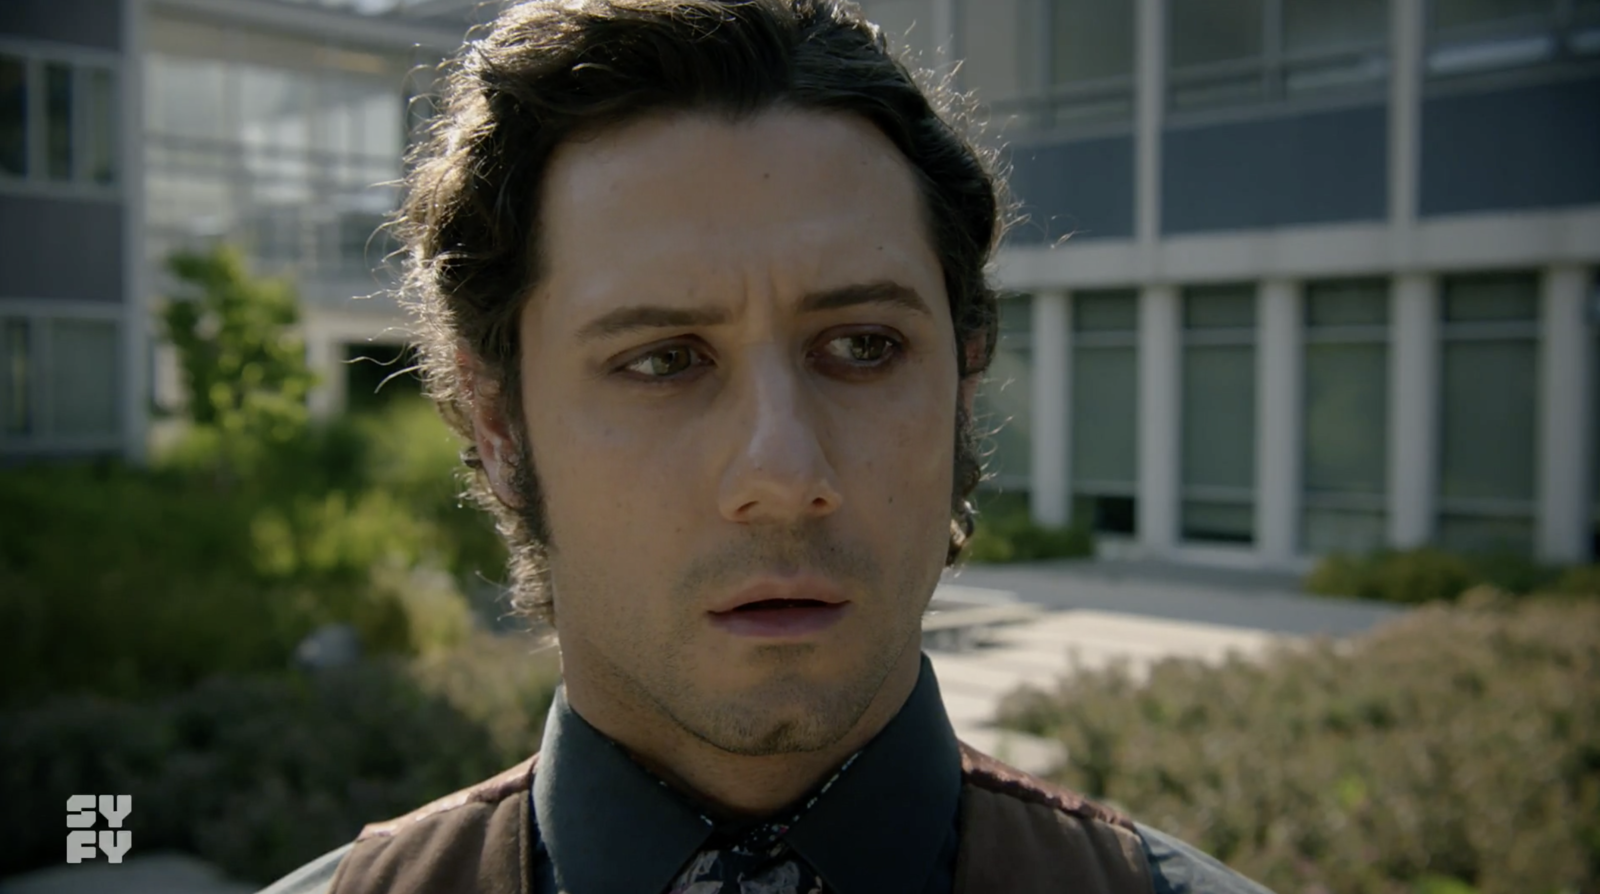 Also on  The Magicians , Eliot is seemingly alive and well even though his body is being possessed by the monster.